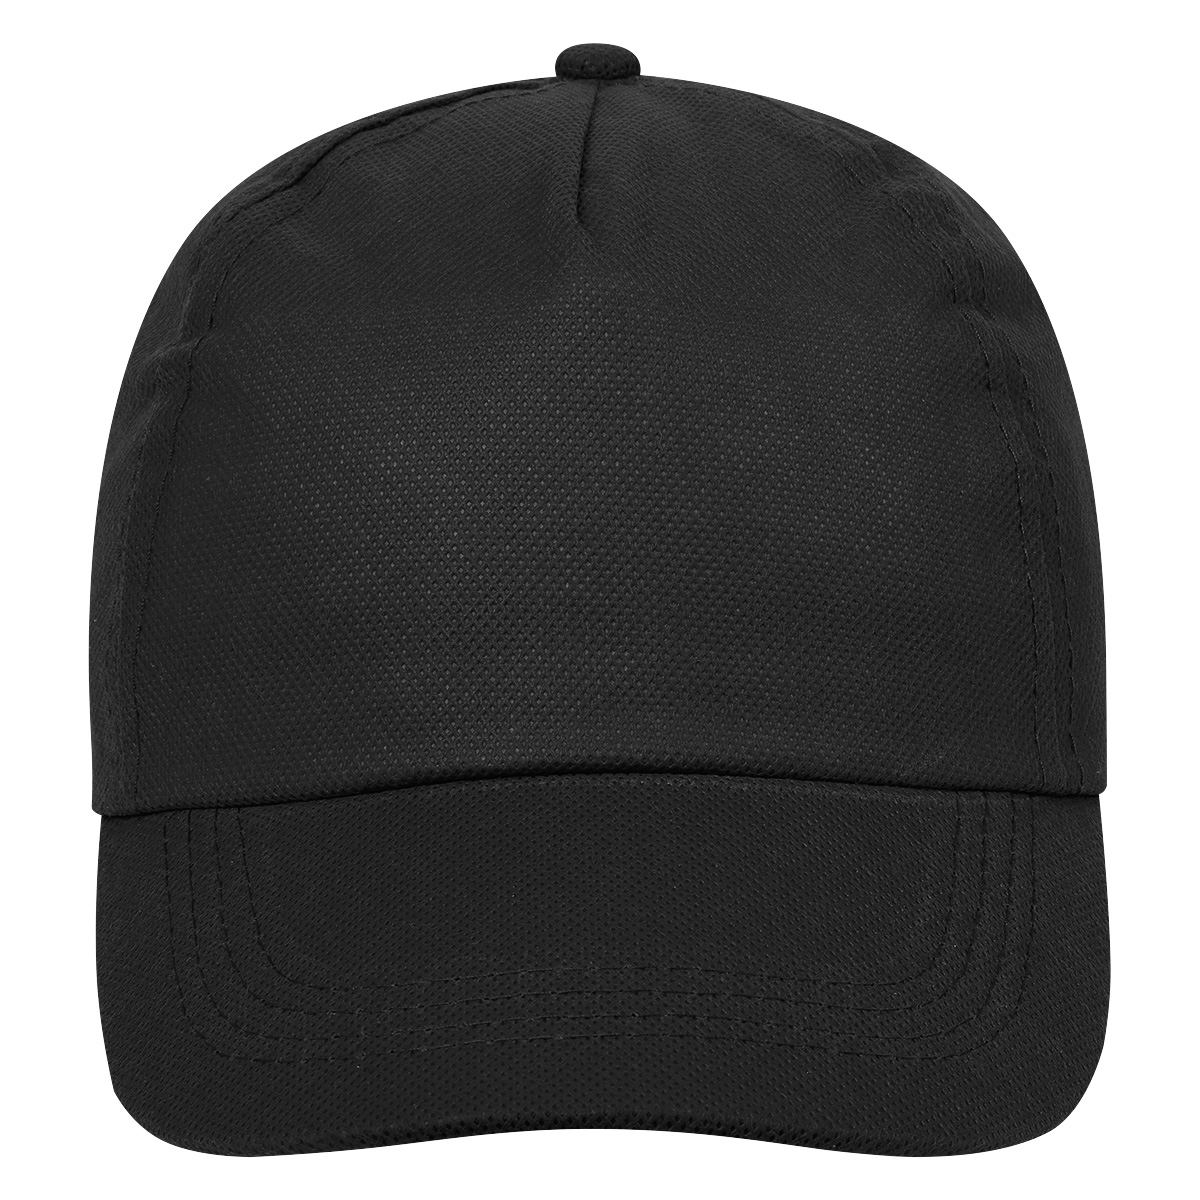 1002 Budget Saver Non-Woven Cap - Hit Promotional Products 938f55c1ac90